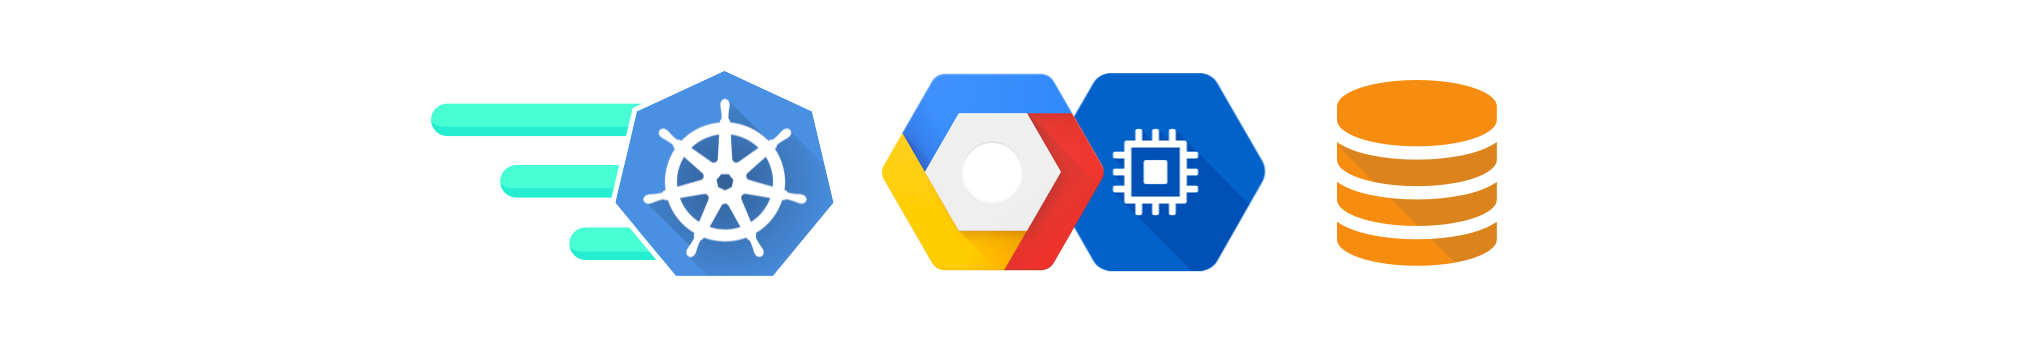 Kubernetes 1 4, Google Compute, AWS Volumes — All Secured